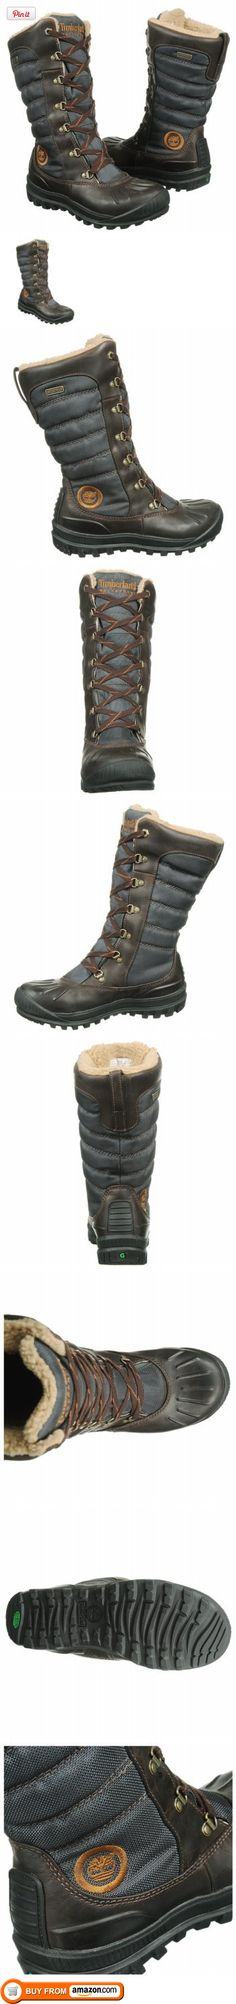 Timberland Women's 21644 Earthkeepers Mount Holly Tall Lace Duck Boot,Brown/Brown,7 M US,  Please note: Timberland advises this style runs small and recommends sizing up.For example, if you normally wear size 8, you may want to order size 8 1/2. Take your winter attire to new places, no ma..., #Apparel, #Boots, http://www.pylinks.com/store/item-B003ELOZVM